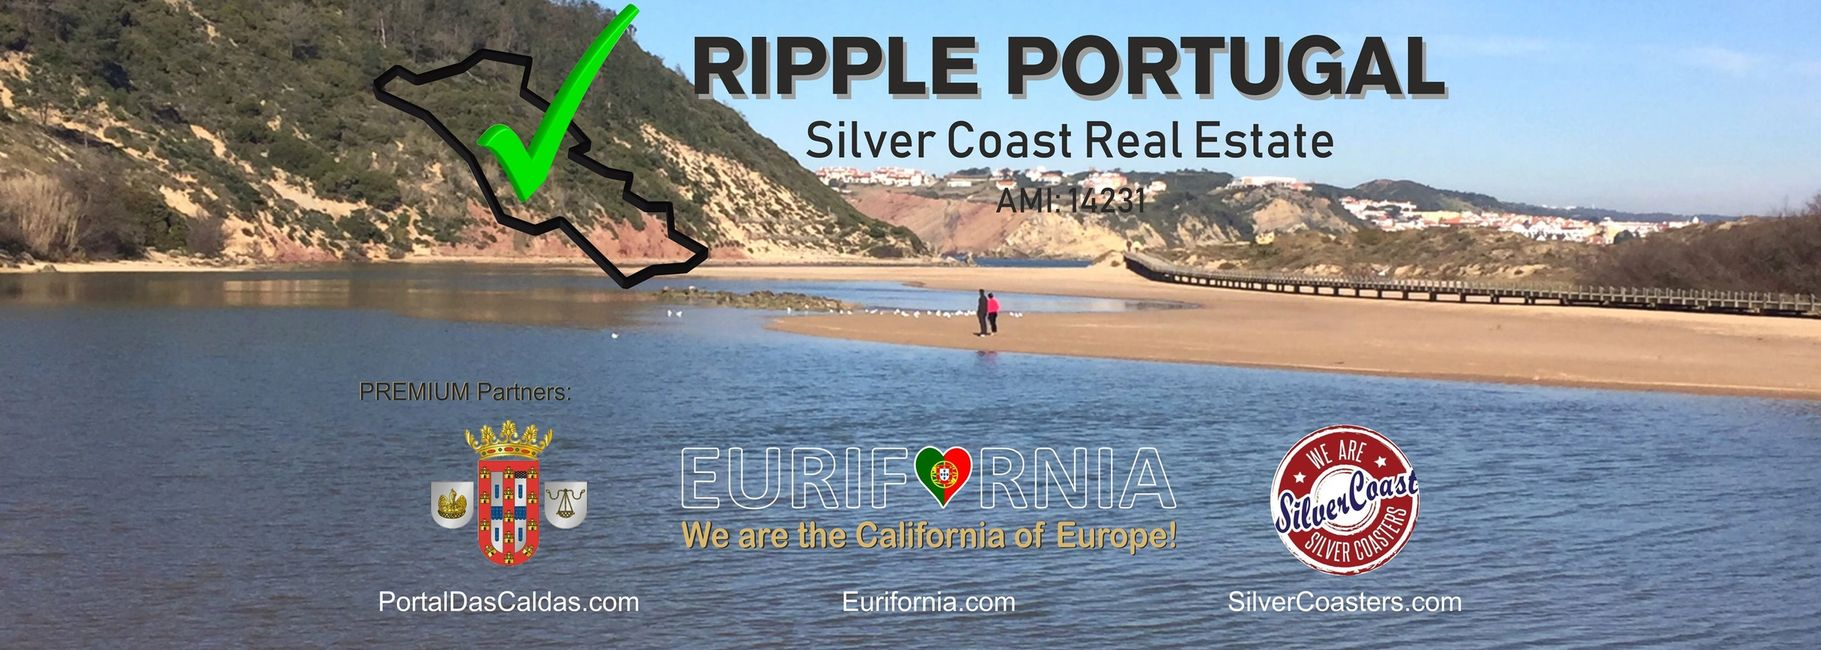 RIPPLE PORTUGAL - Real Estate - Imobiliária Especialista na Costa de Prata - Torres Vedras